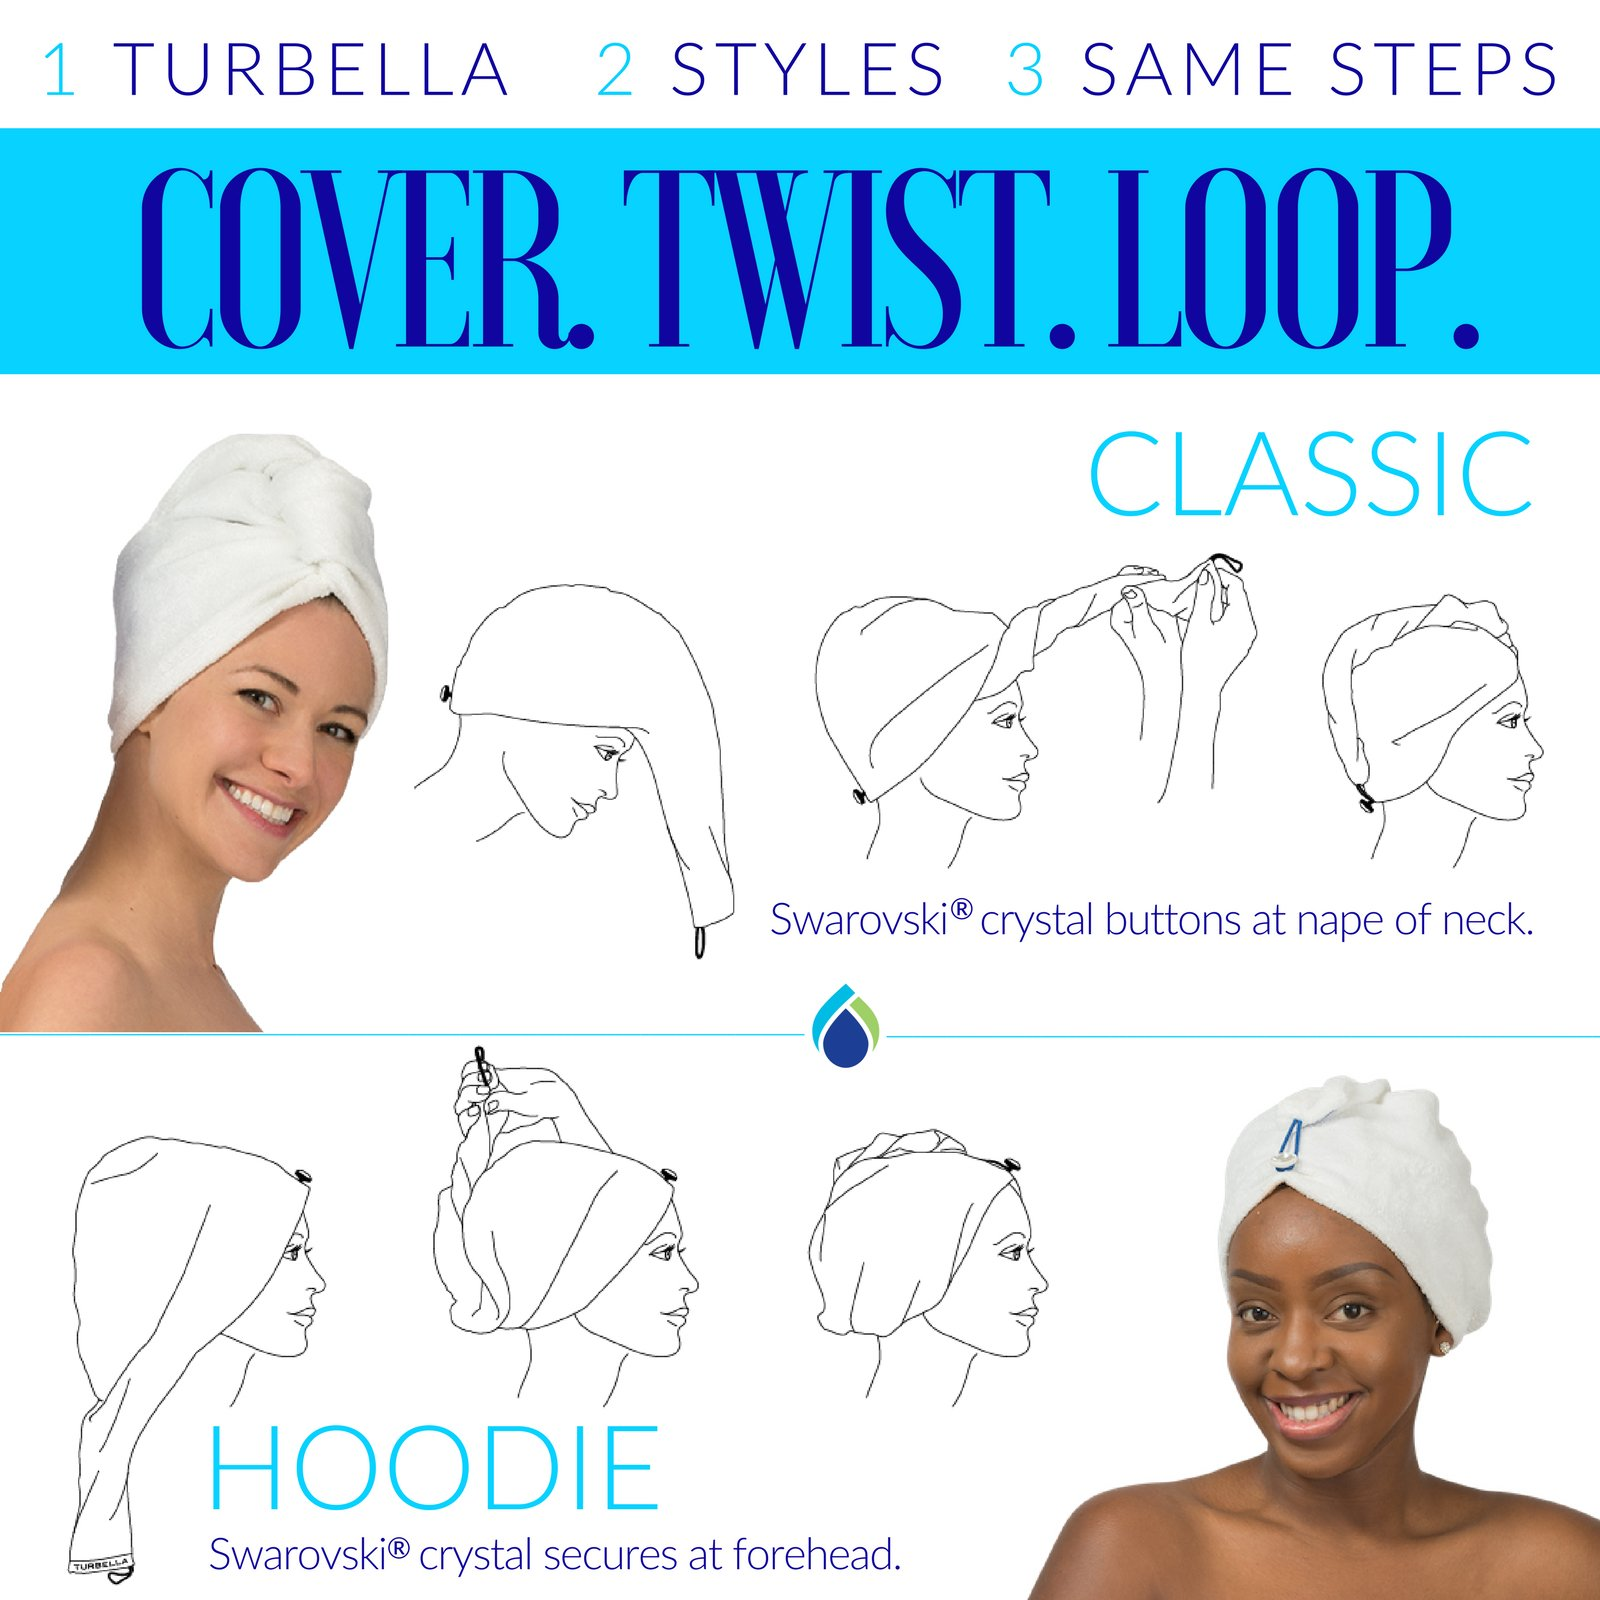 ENWRAPTURE The Only Luxury Hair Towel Wrap Made In USA | Swarovski Button | Nanofiber Beats Microfiber To Dry Wet Hair Fast | Twist Turban In 2 Easy Styles | Large For Long Or Curly | GIFT Travel Case by TURBELLA (Image #6)